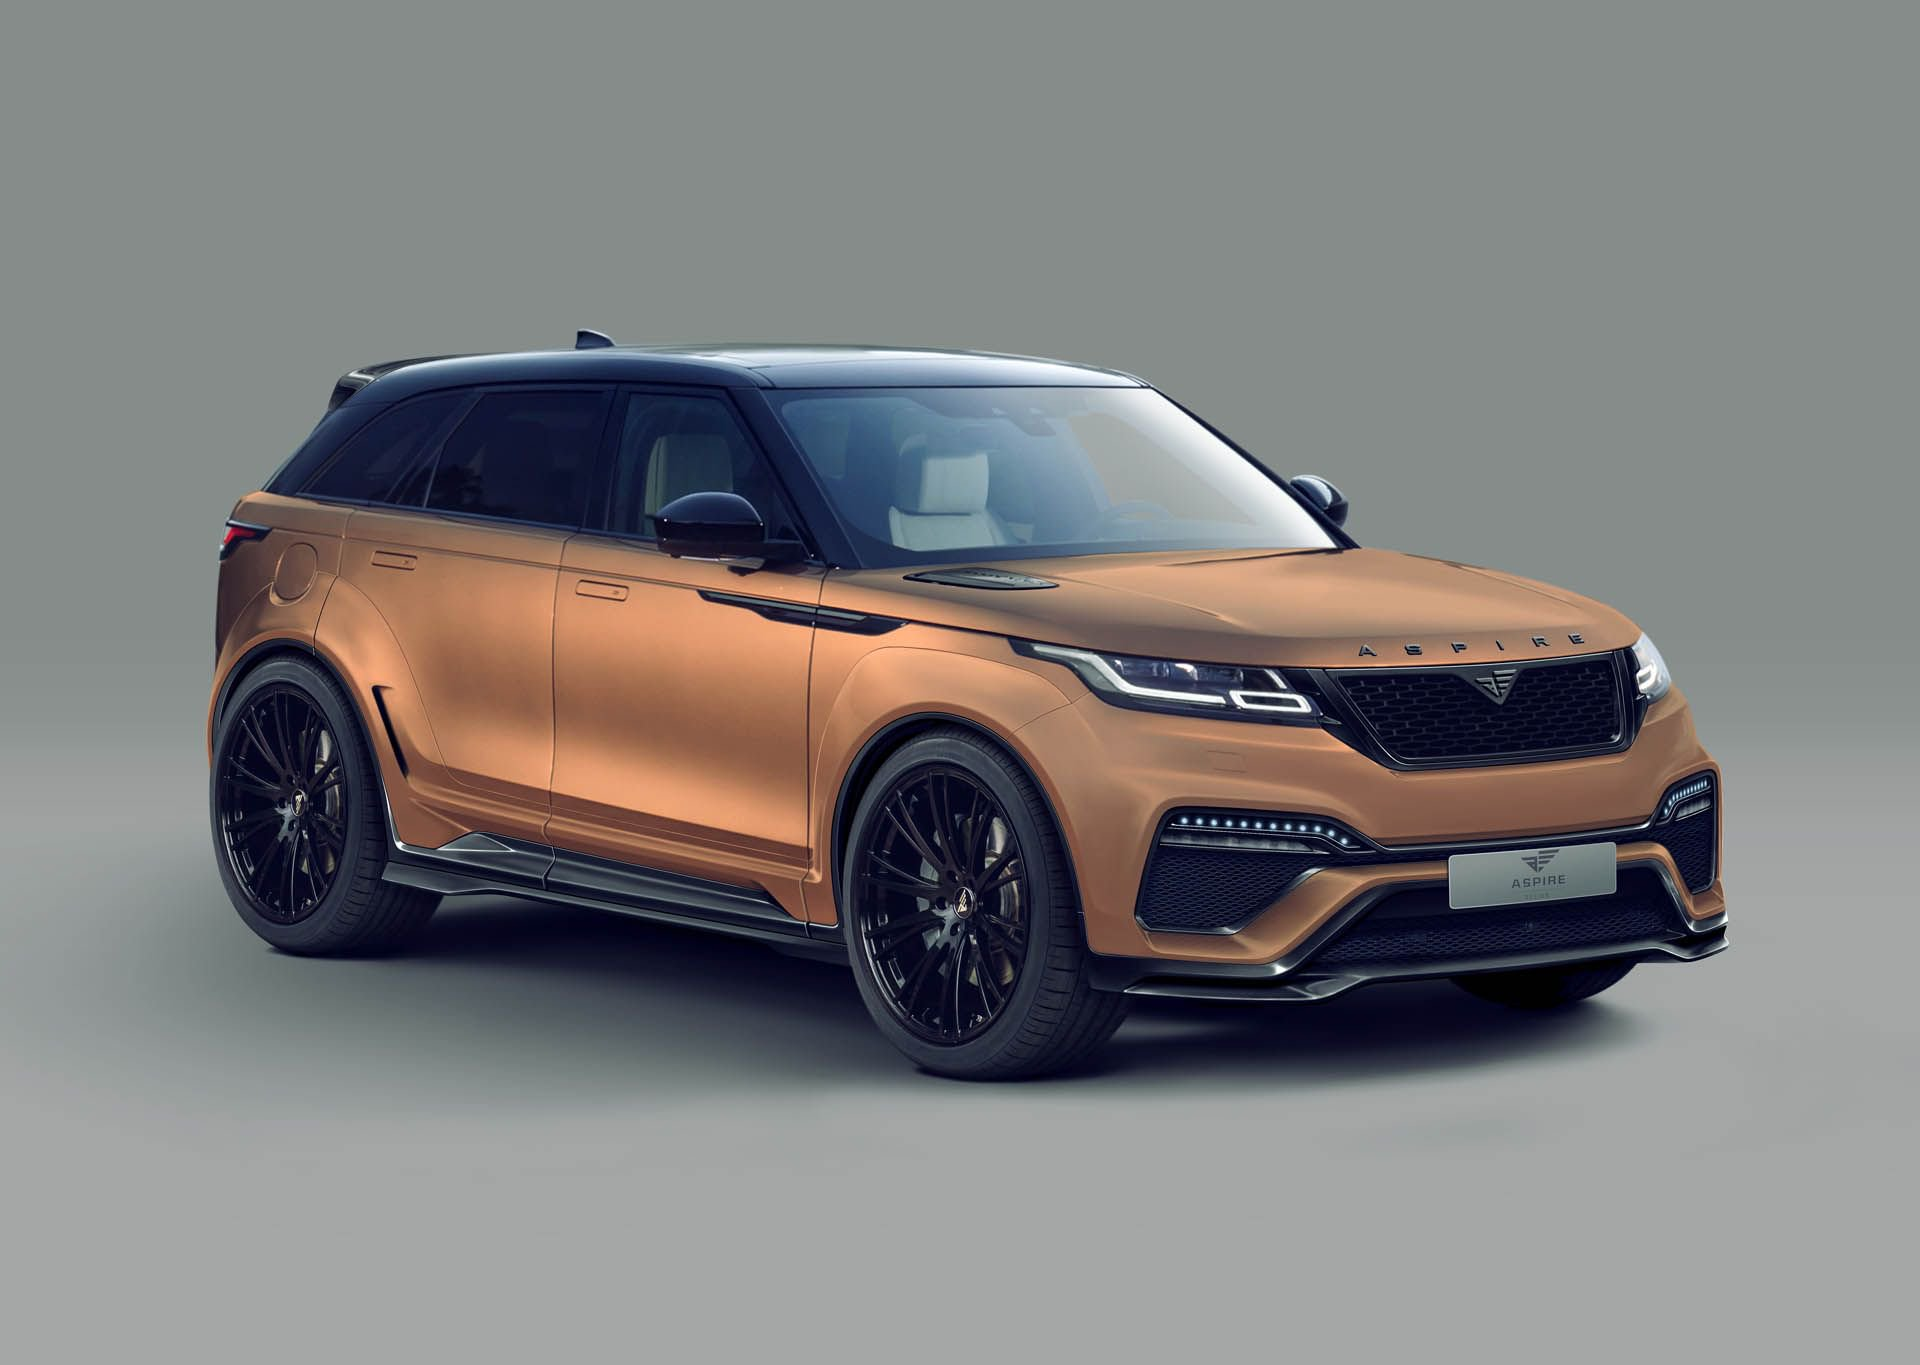 Range Rover Velar by Aspire Design (5)